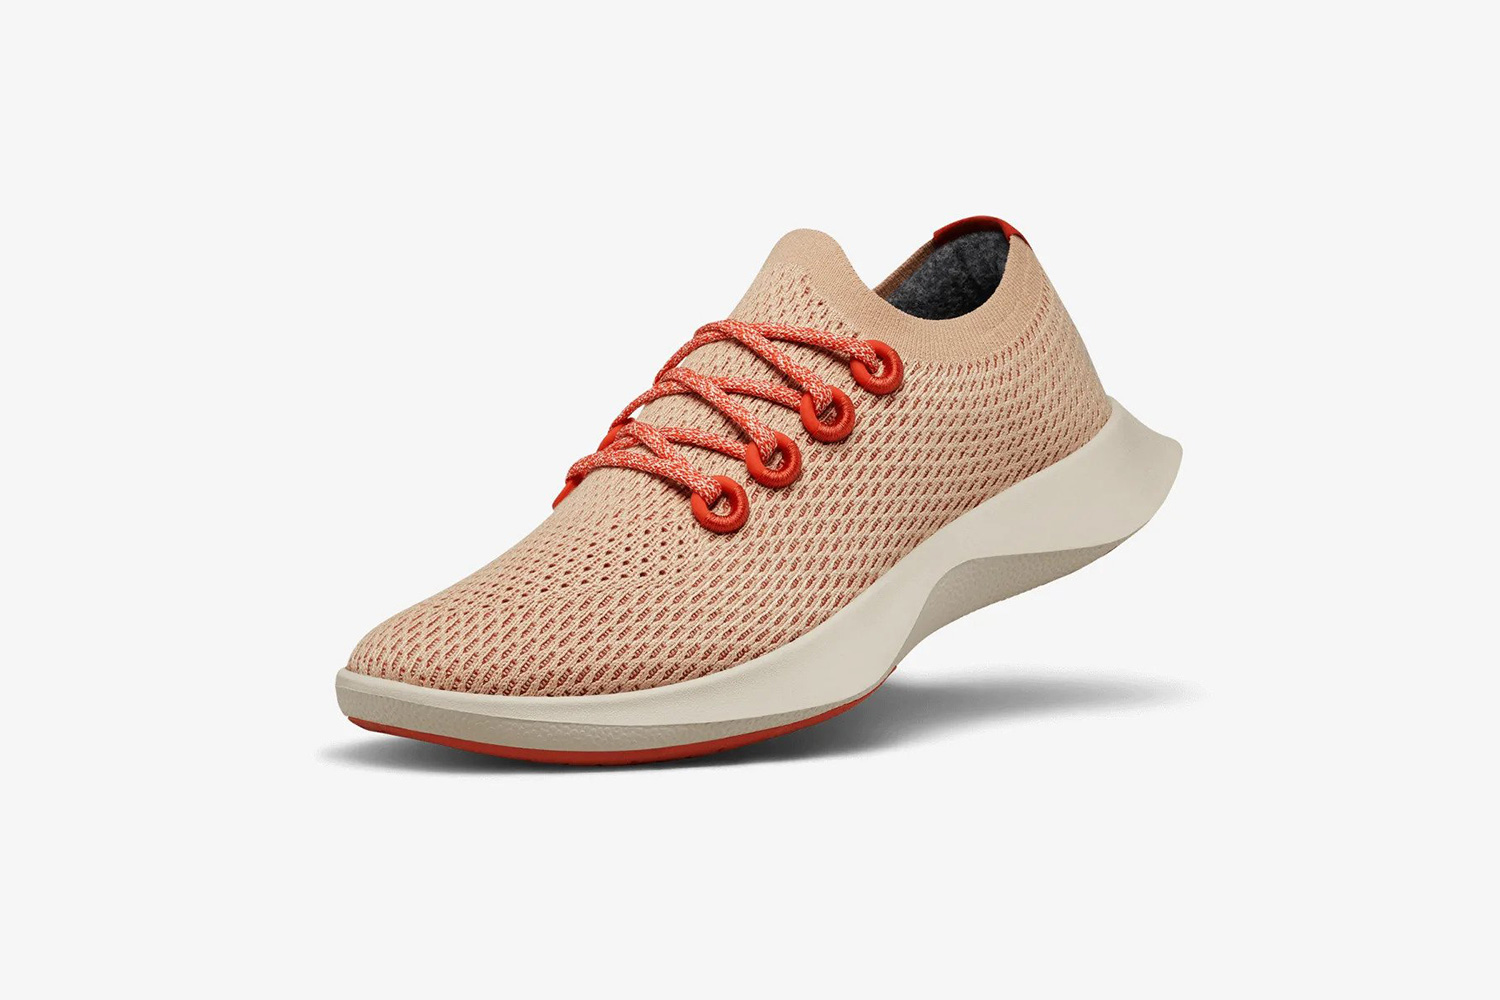 Allbirds Tree Dashers in Flame